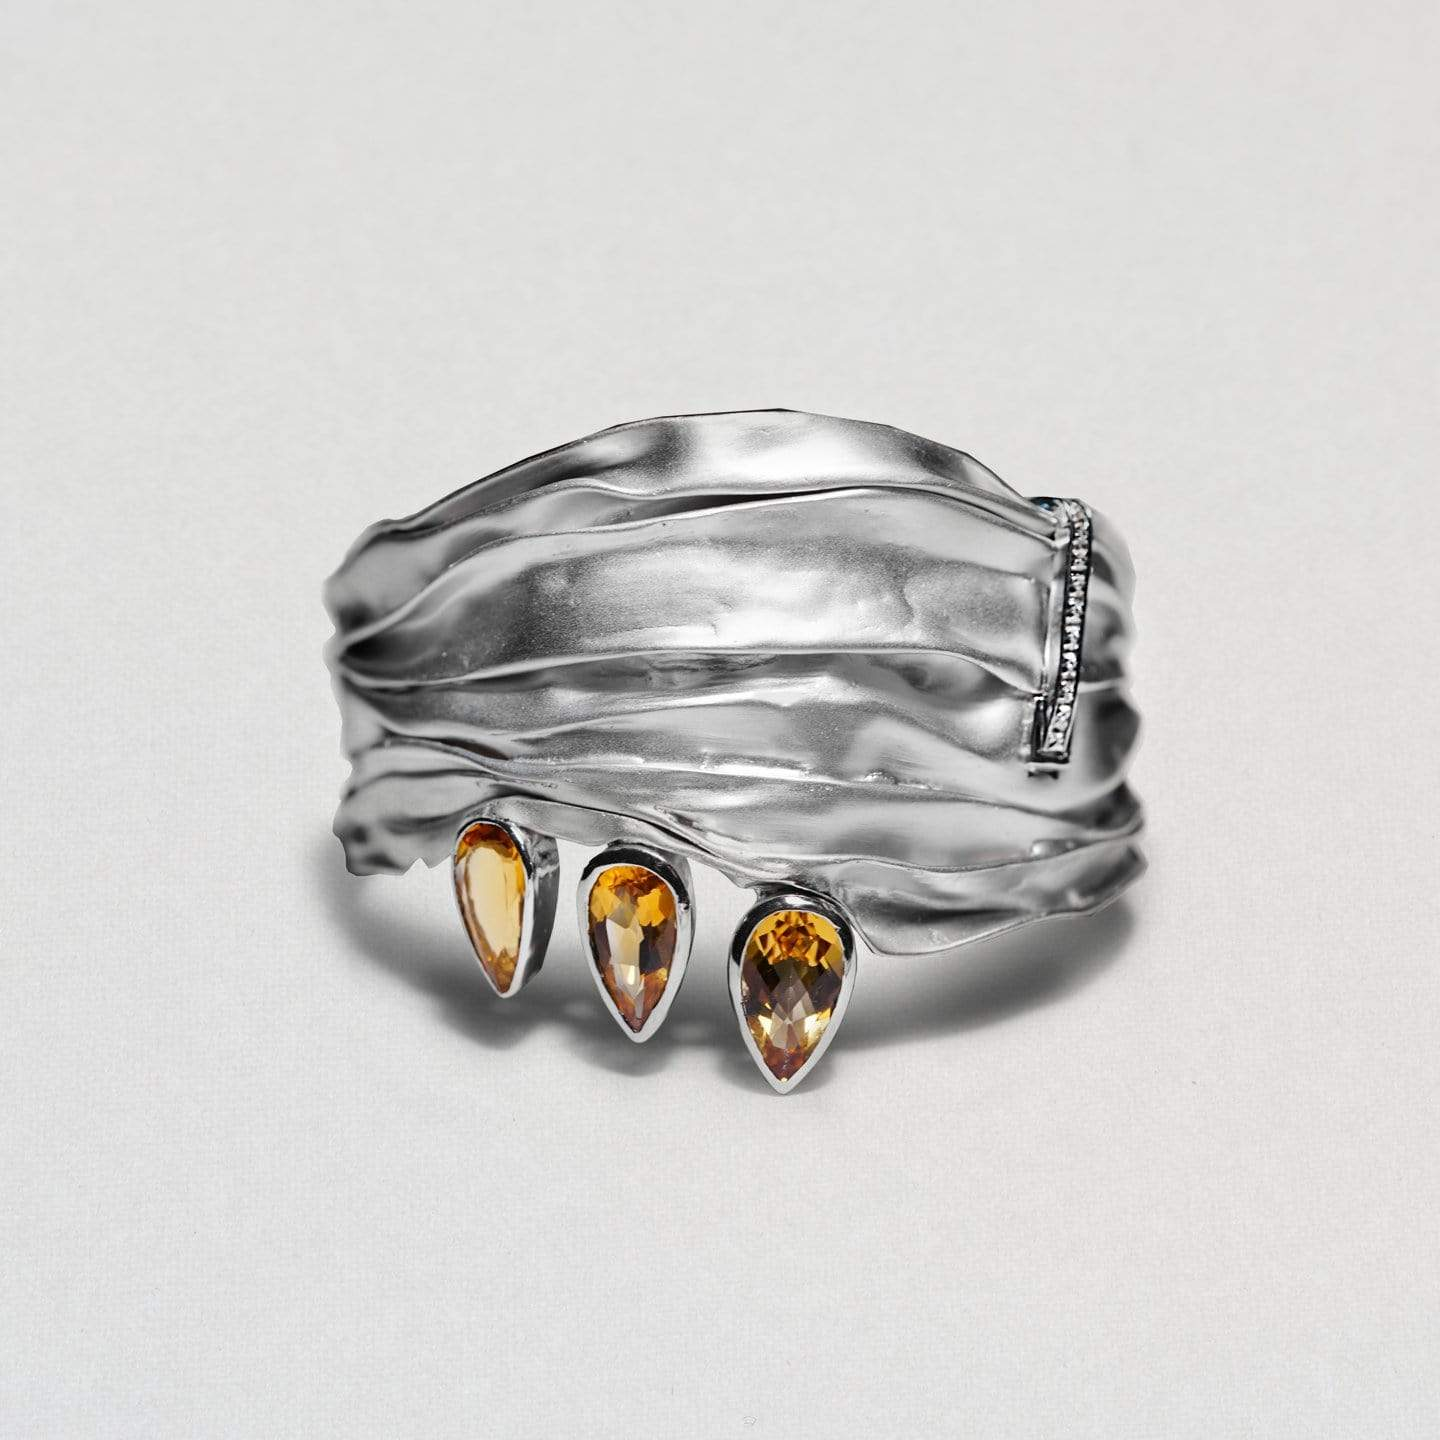 Luthien Bangle, Citrine, Exclusive, Rhodium, Sapphire, silver, spo-disabled, StoneColor:Orange, Style:Everyday Bangle